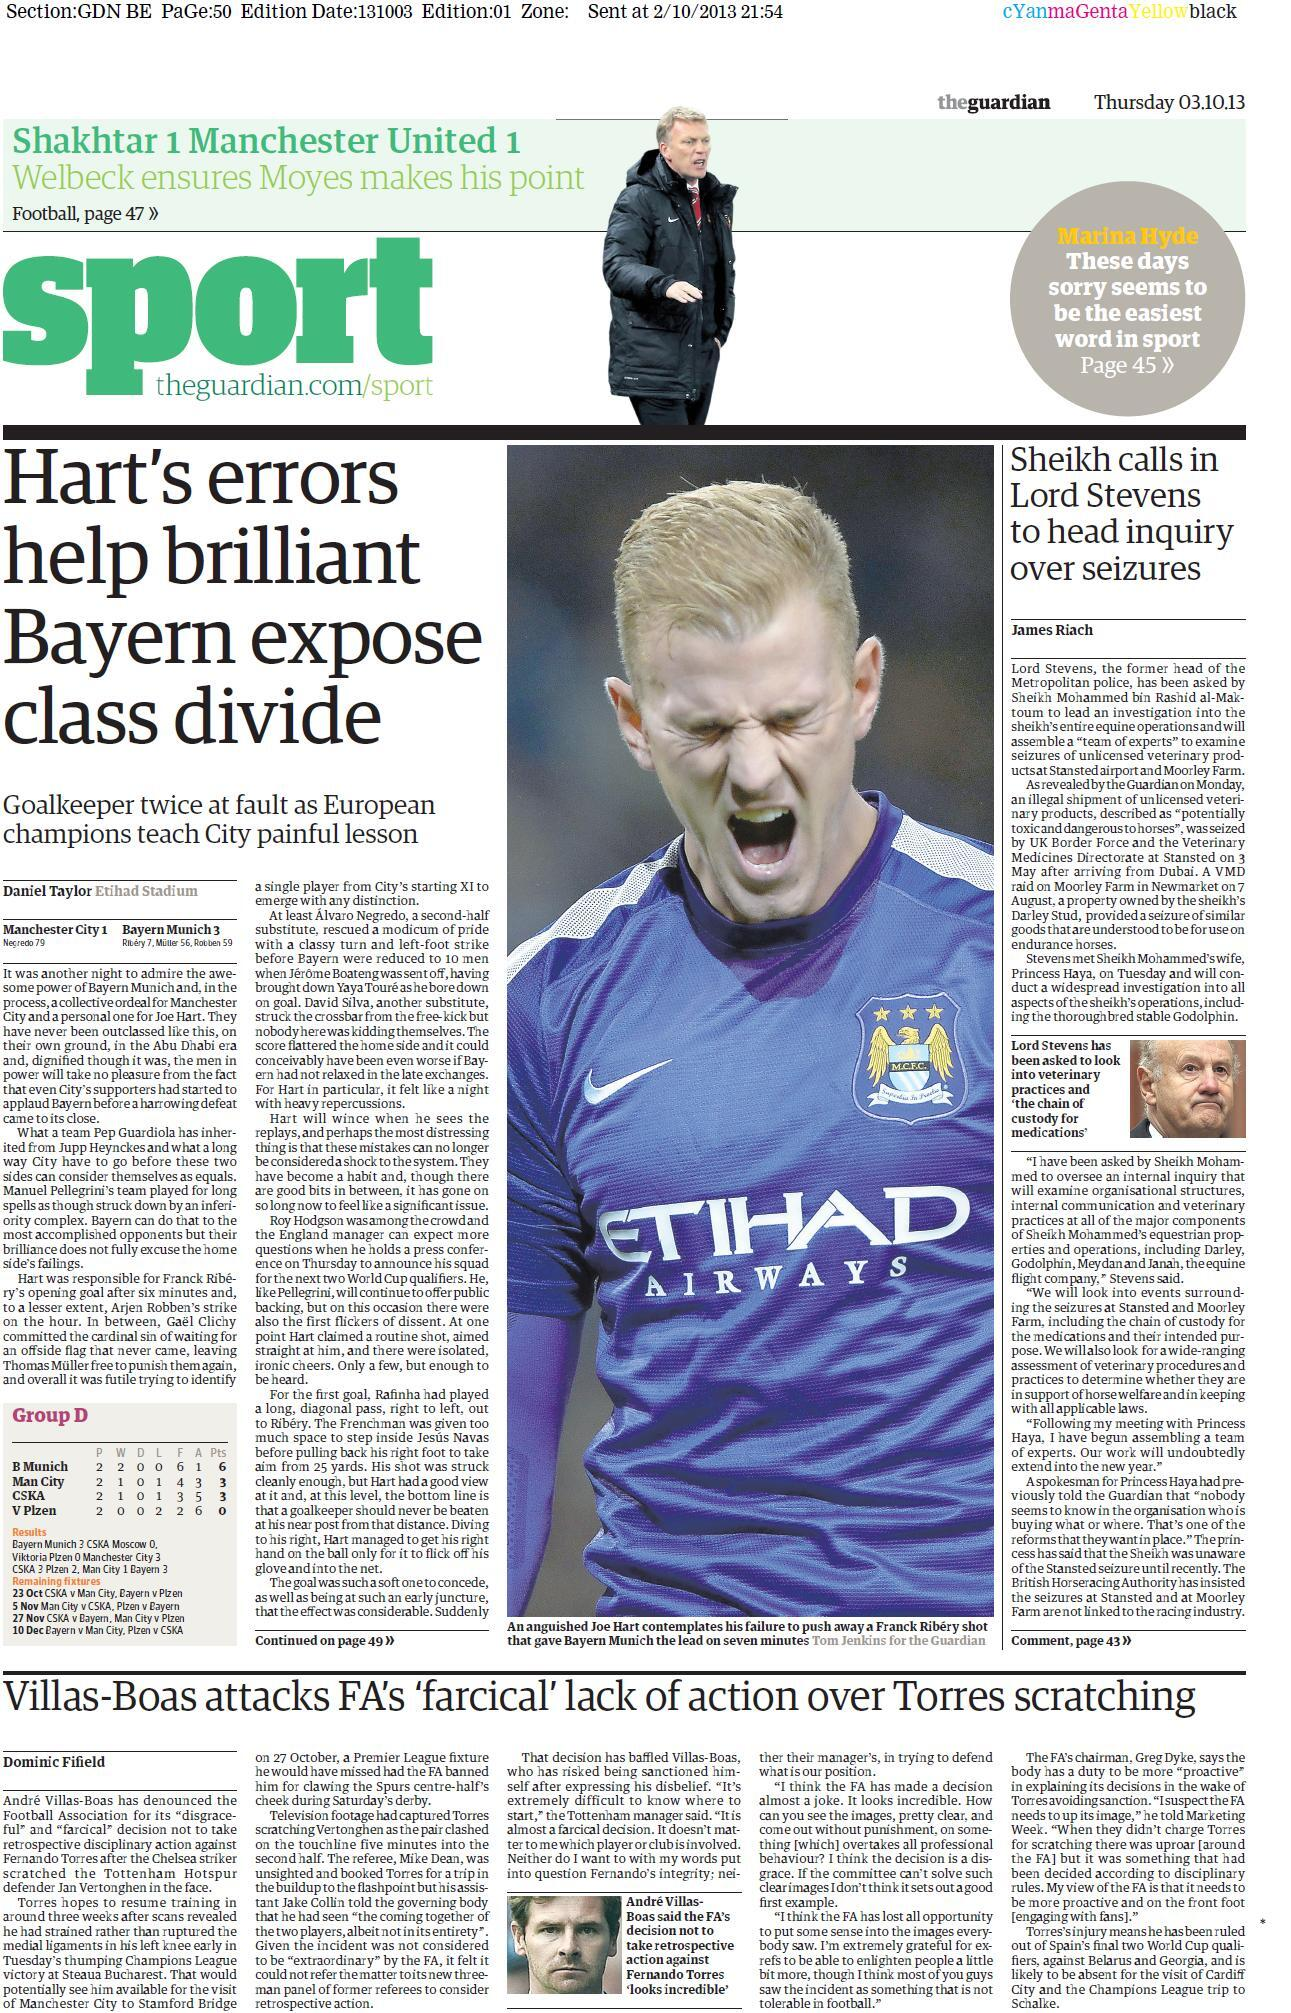 Tomorrows Guardian puts the blame on Joe Hart for Manchester City defeat